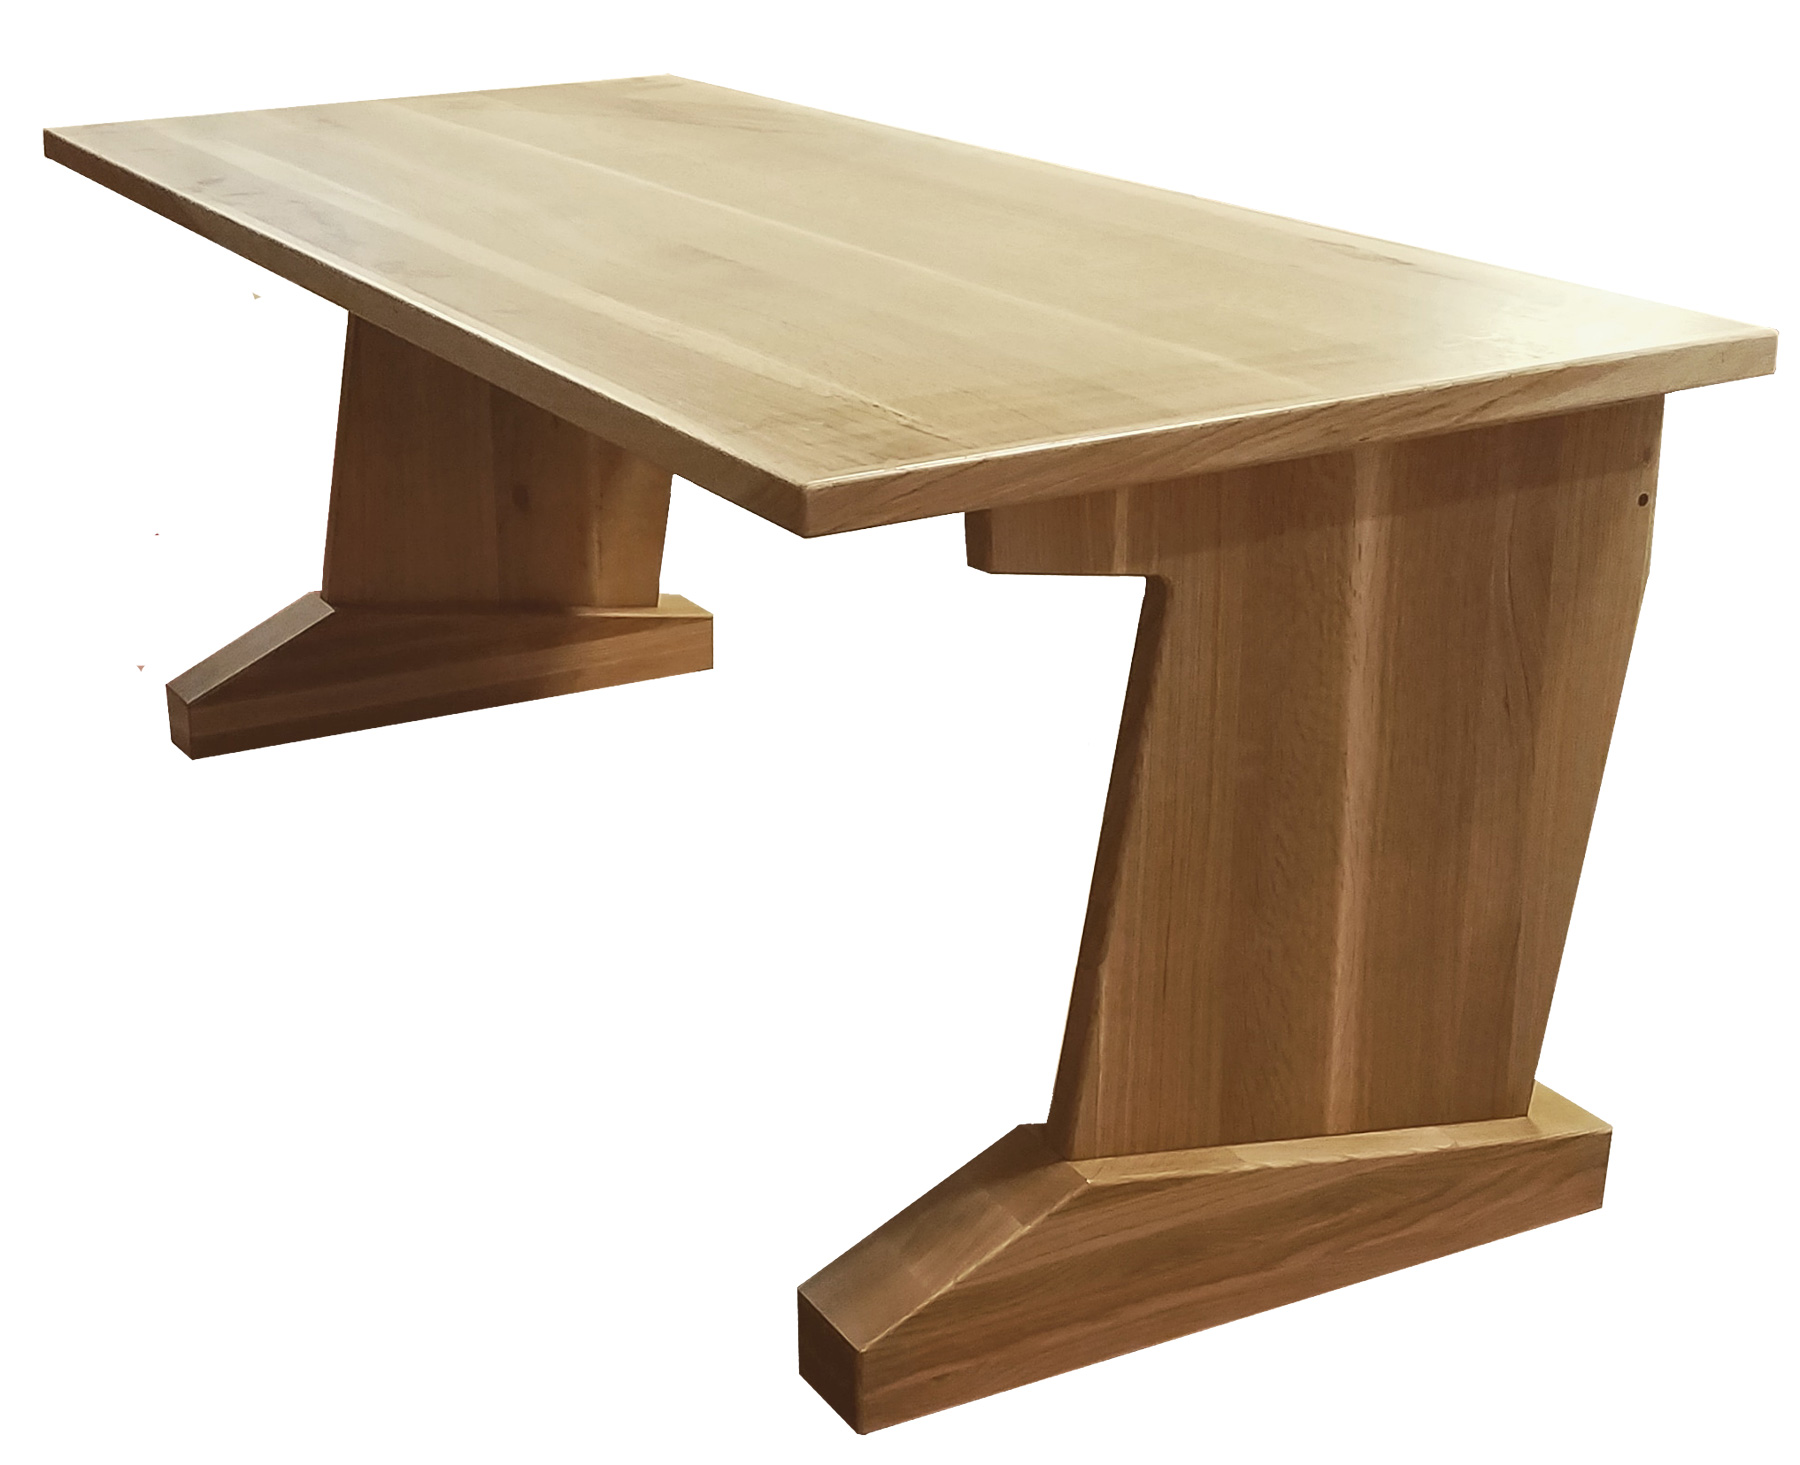 Shown In White Oak For This Configuration Is Red